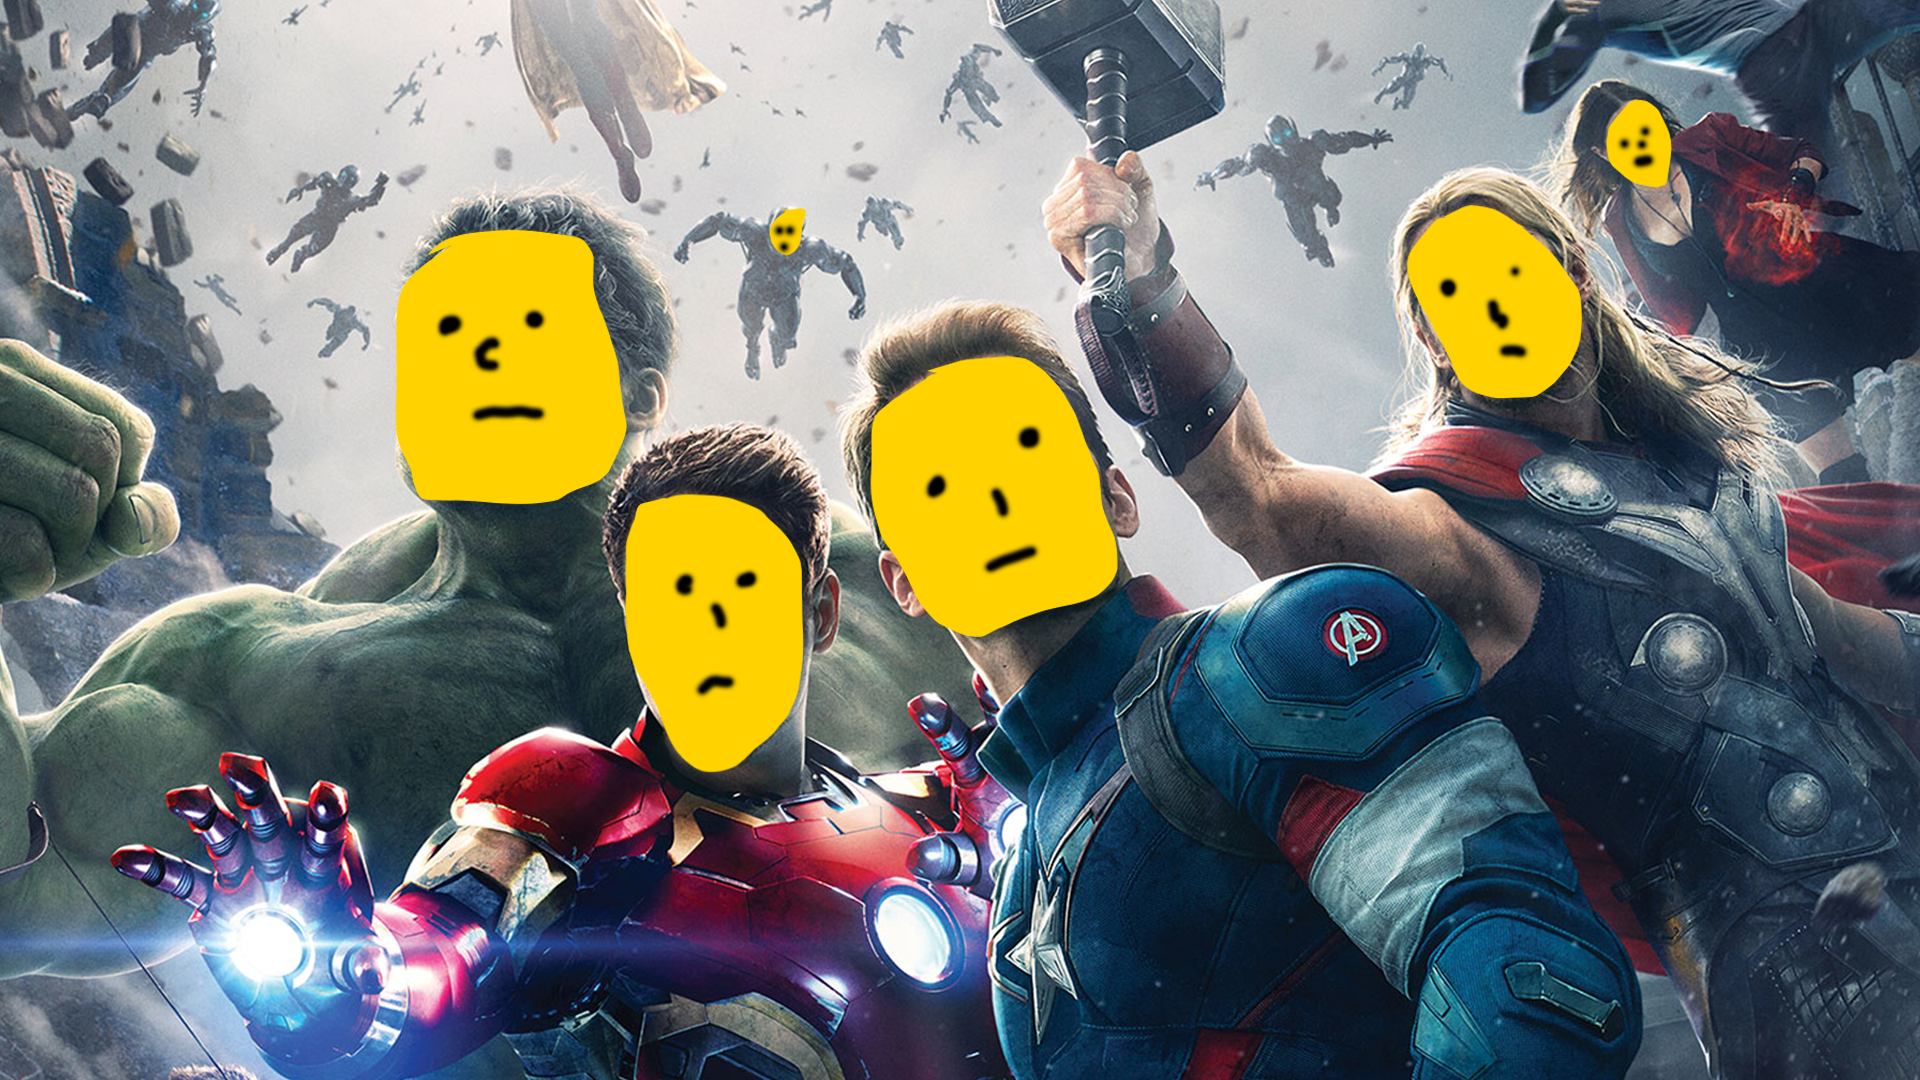 The Marvel Cinematic universe feels a little empty.